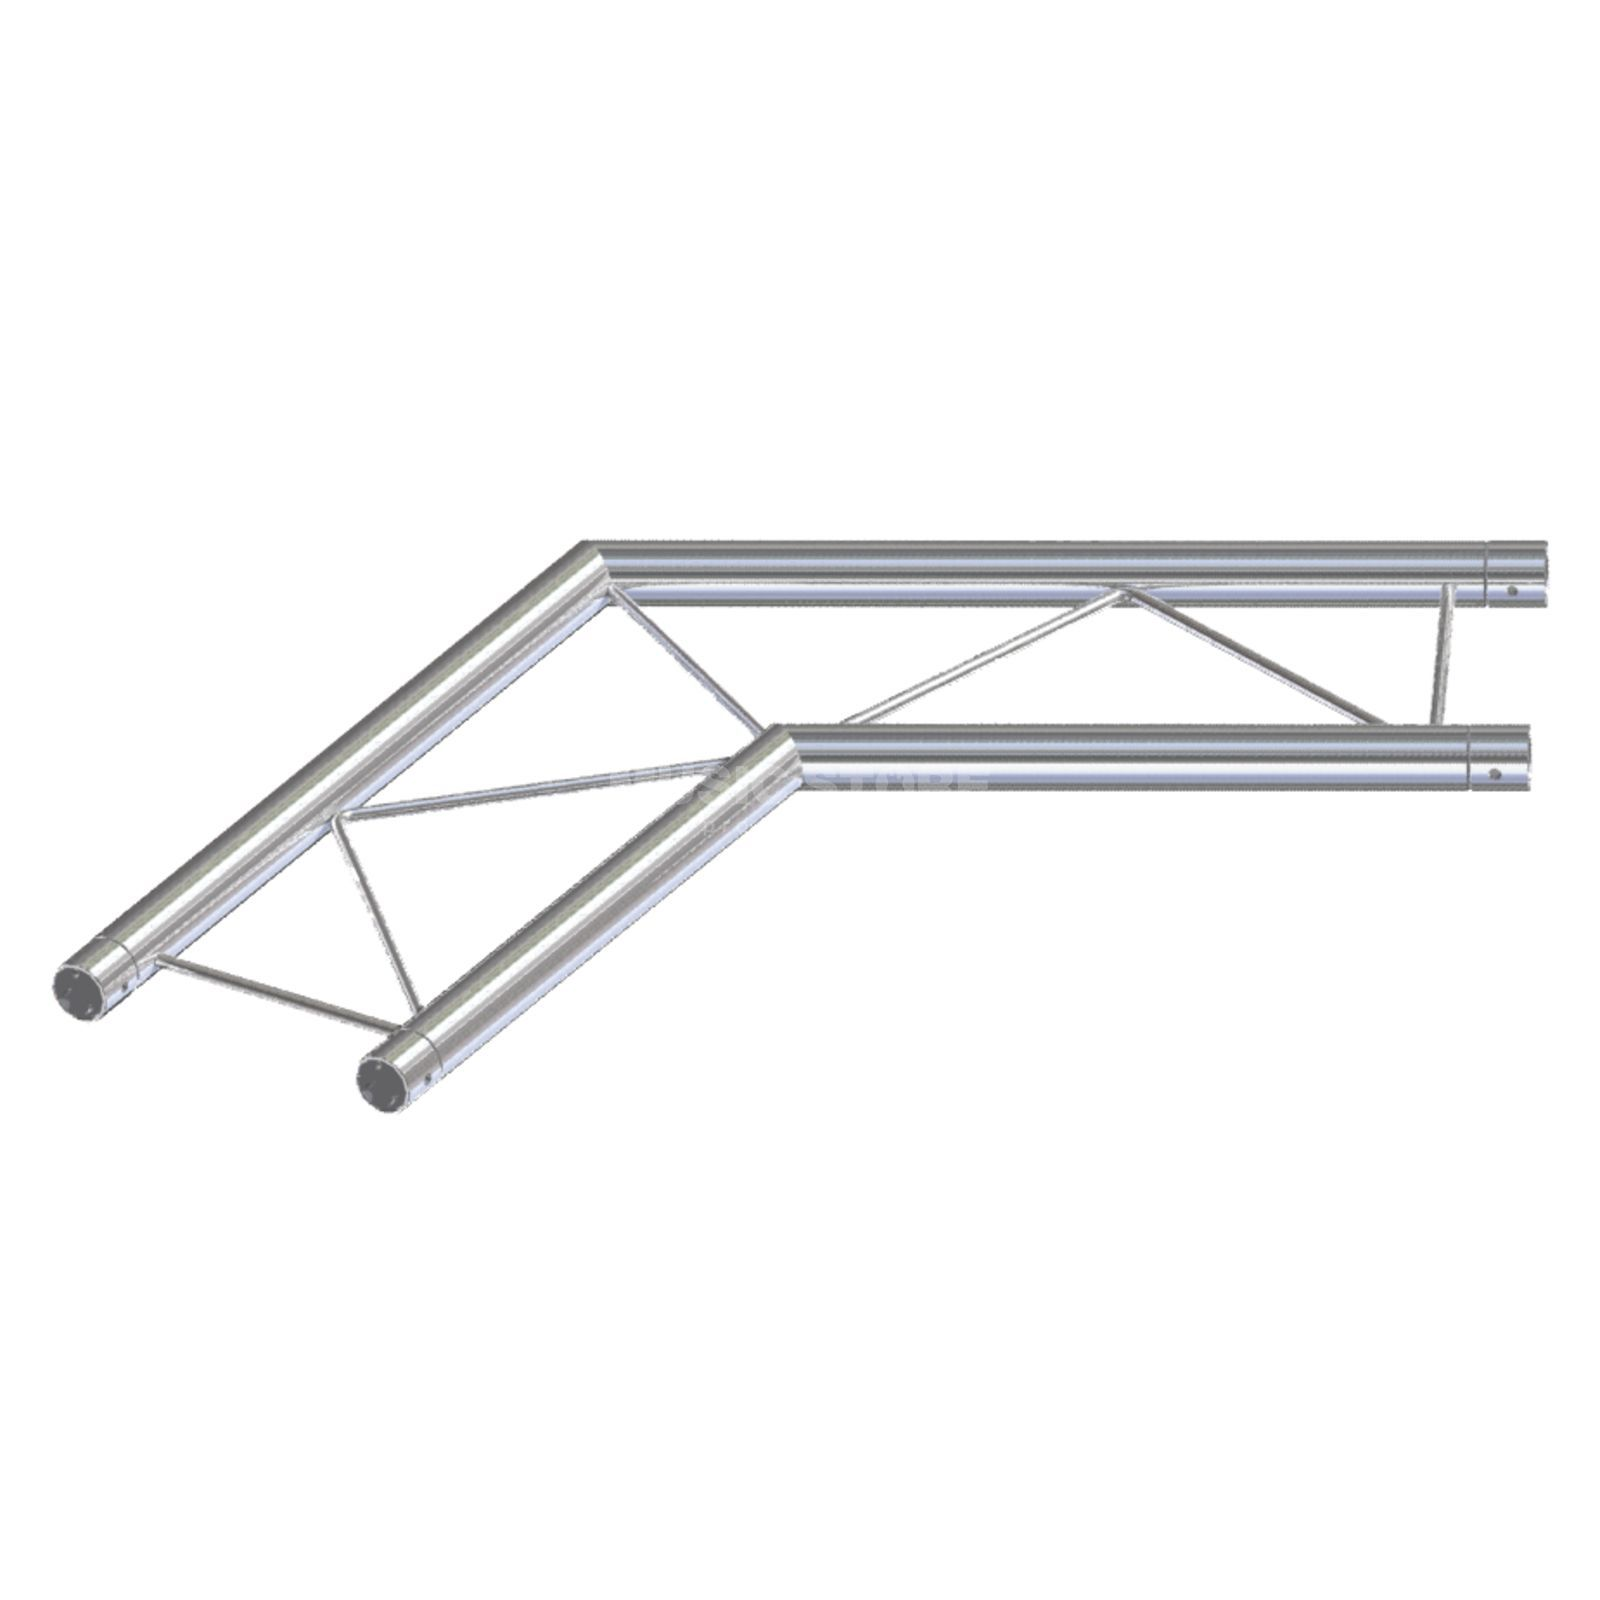 Global Truss F22 2-Way Corner C22 H 120°  Produktbillede